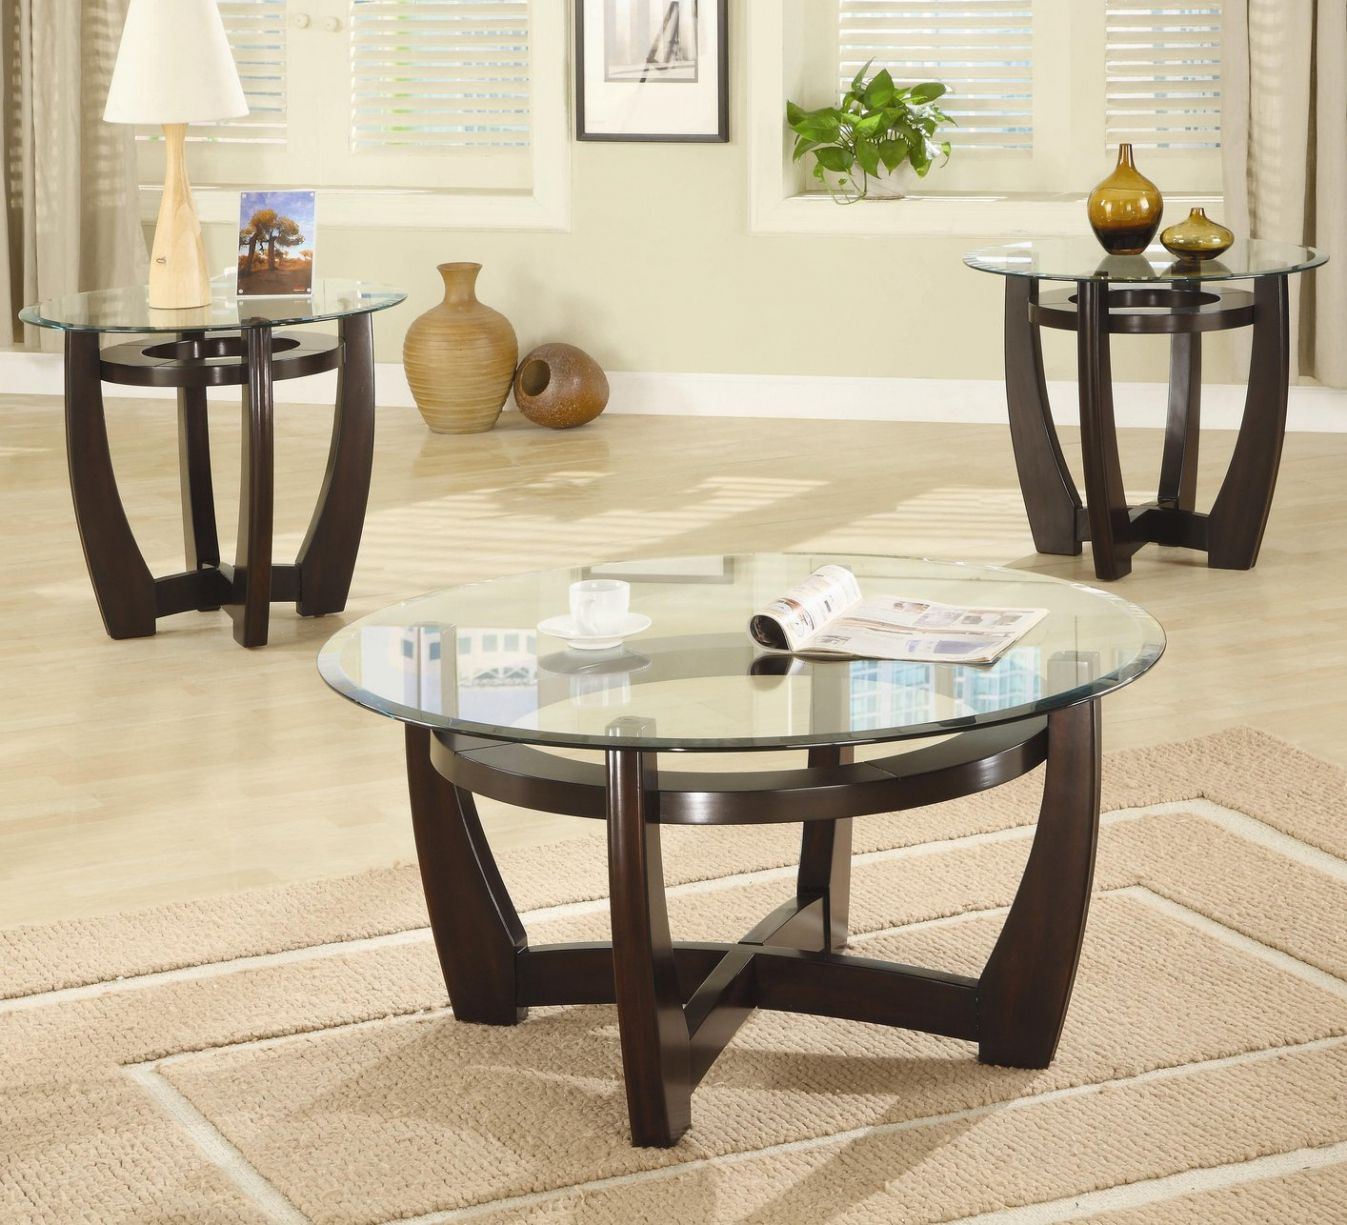 Glass Coffee Table Sets  Modern Design Furniture Check More At Alluring Living Room Table Sets Design Ideas